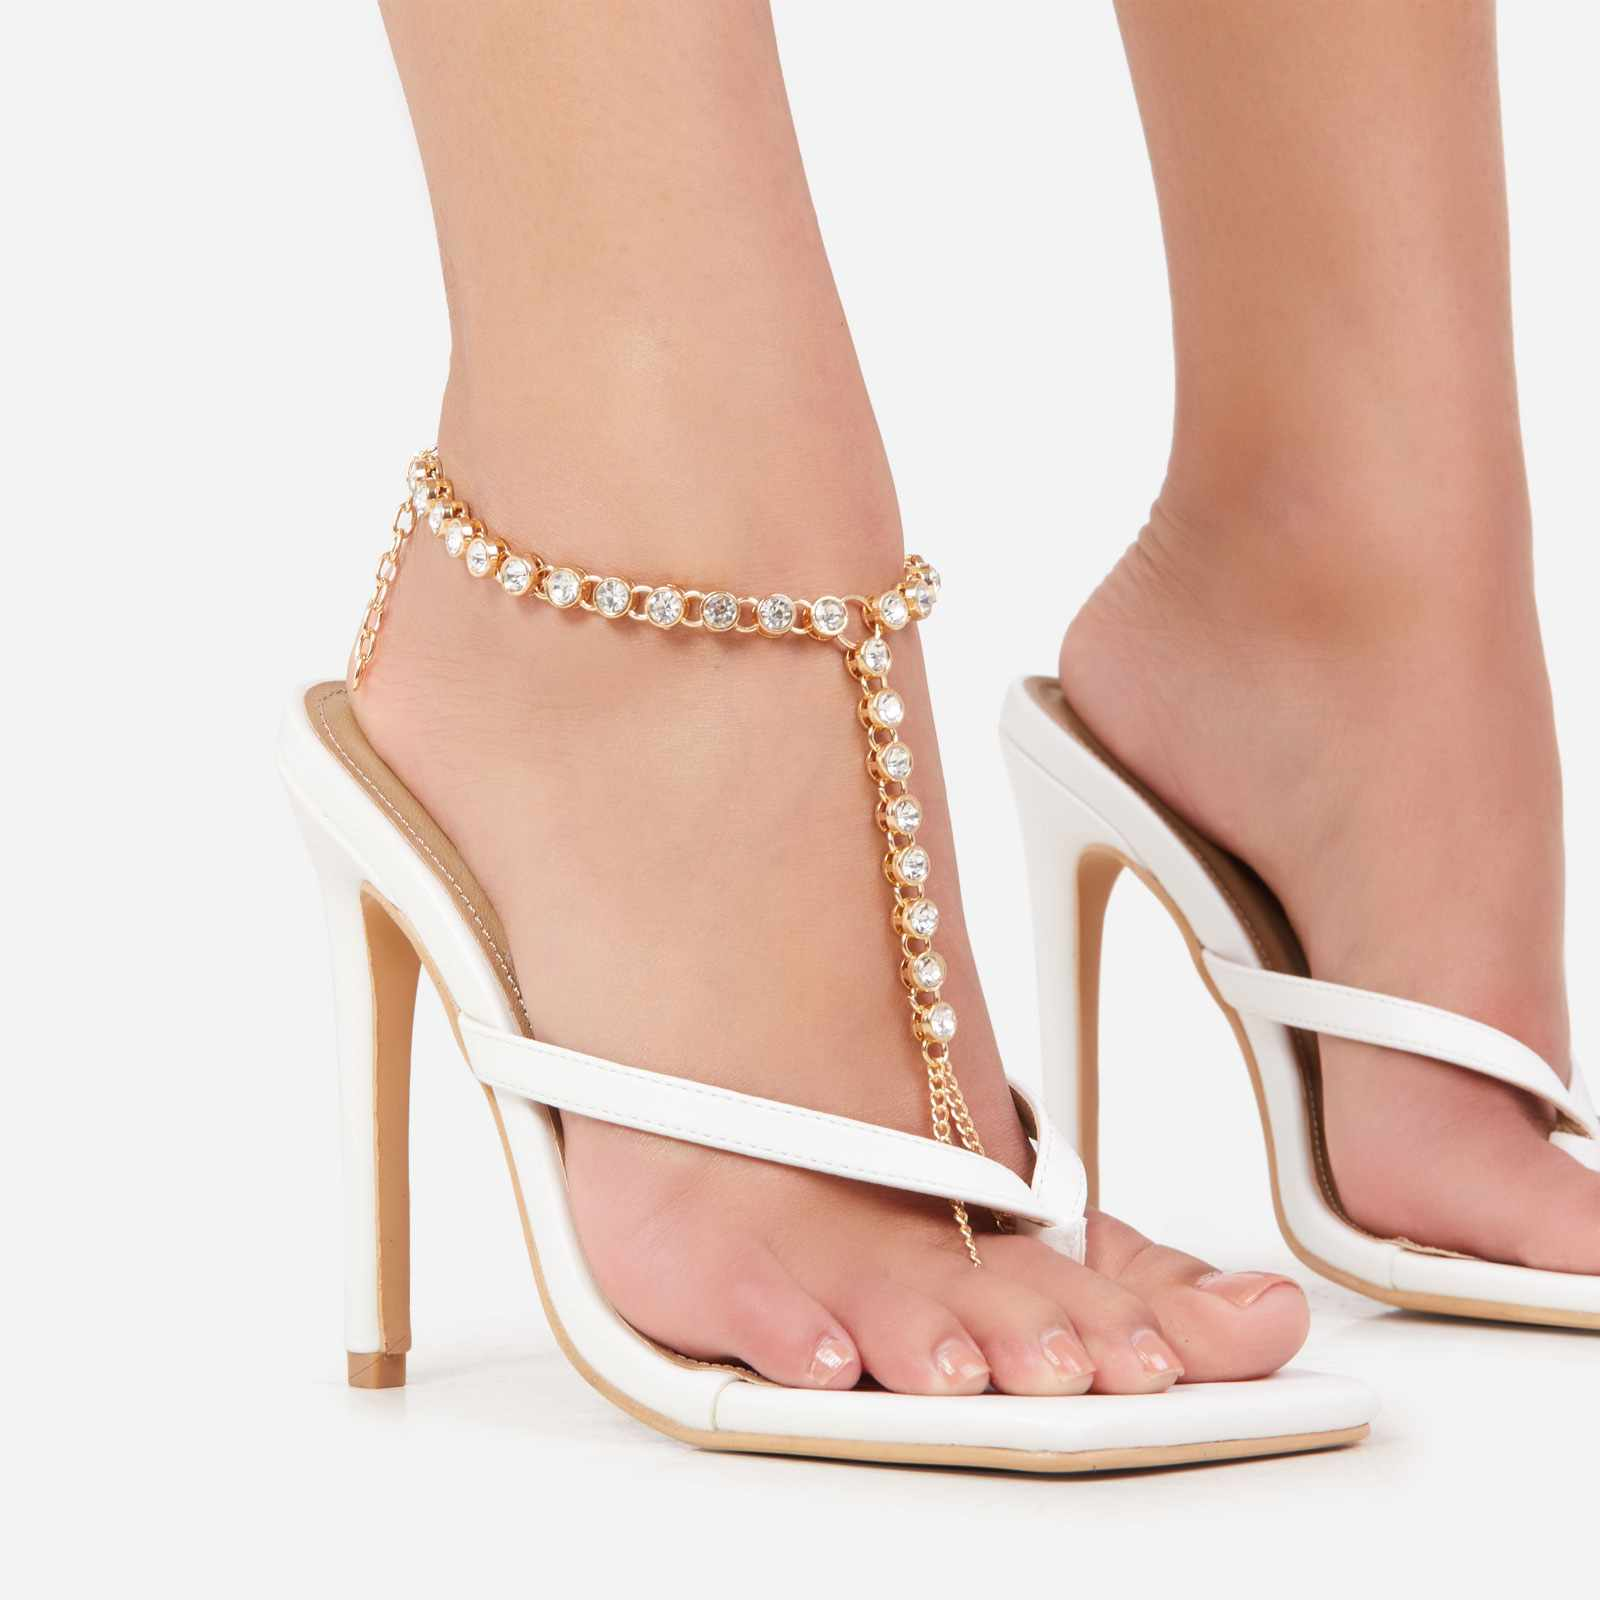 Diamante Gem Detail Foot Chain In Gold